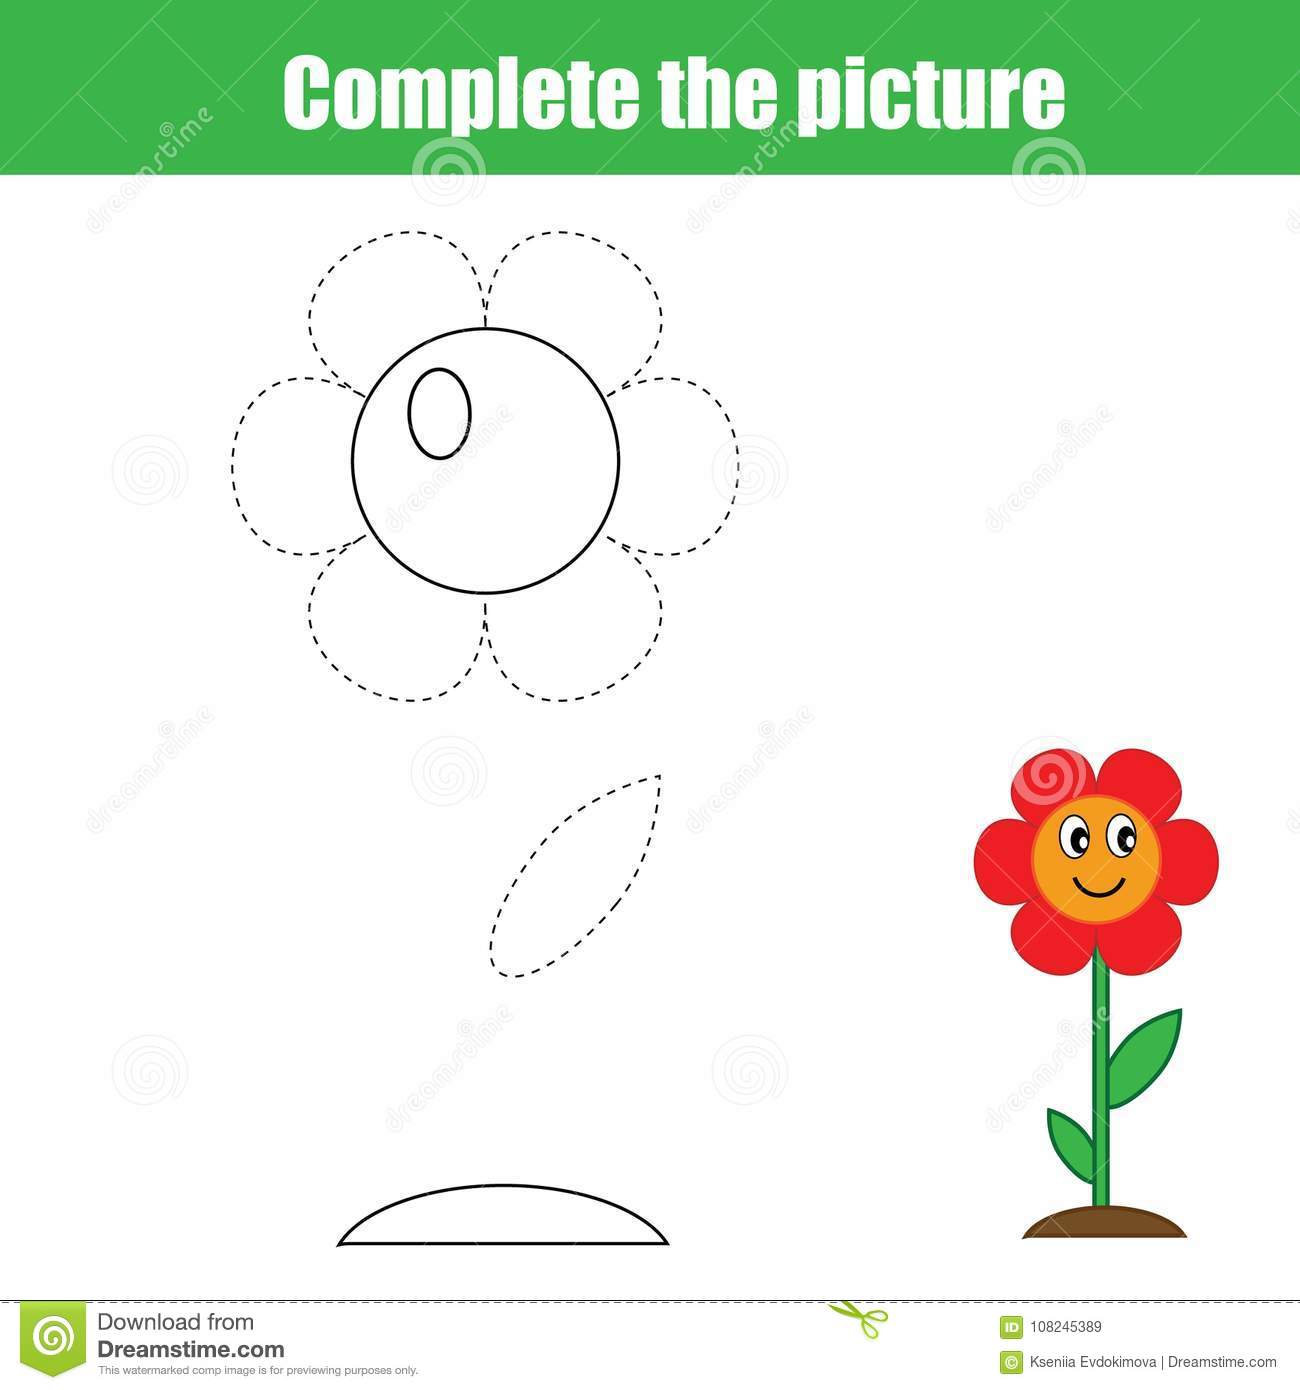 worksheet Flower Worksheet complete the picture children educational game coloring page kids activity with flower printable drawing worksheet